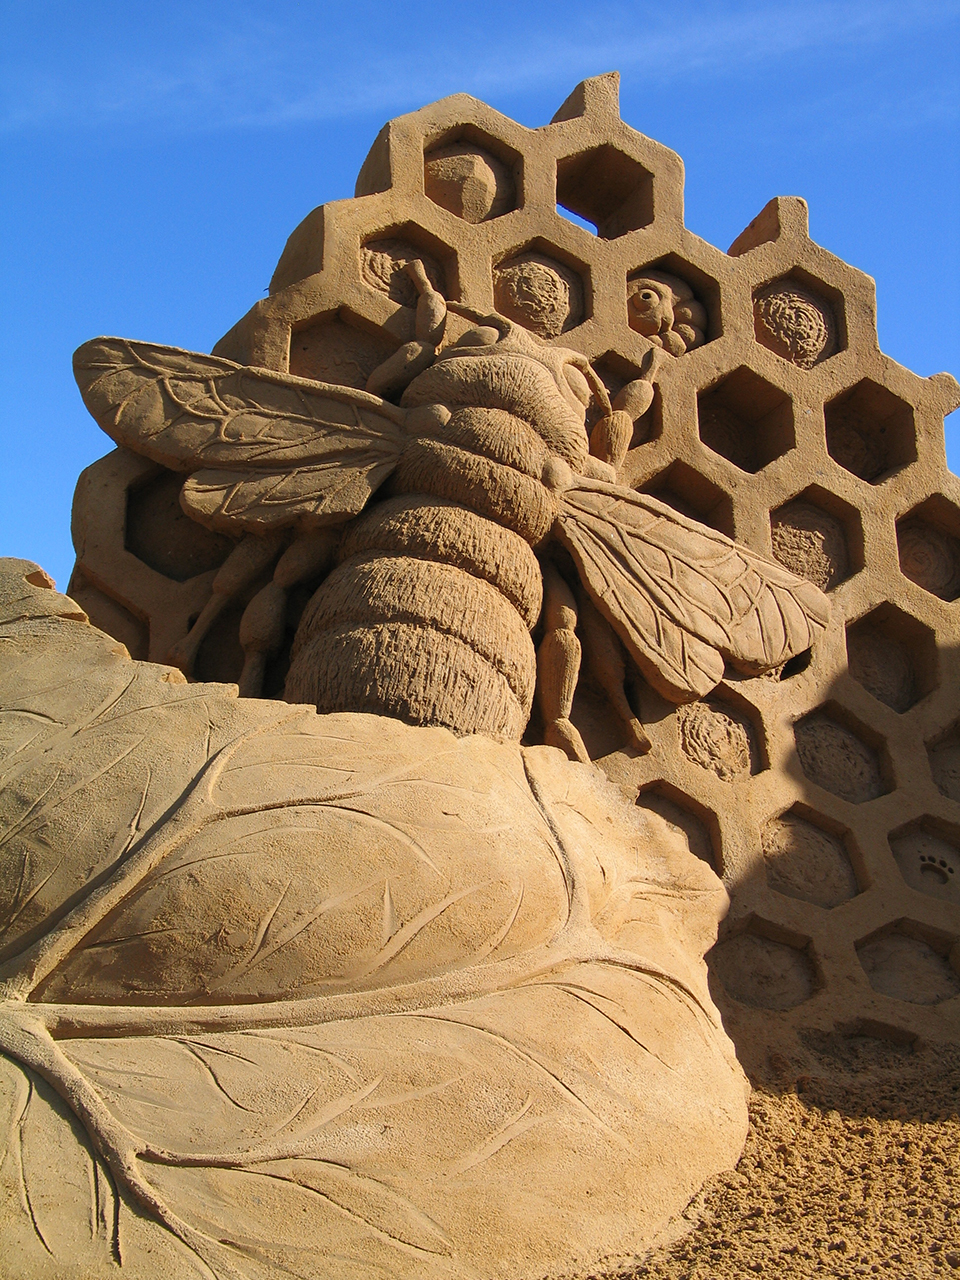 2970695099 00ed7217f4 o Amazing Sand Sculptures by Fergus Mulvany.